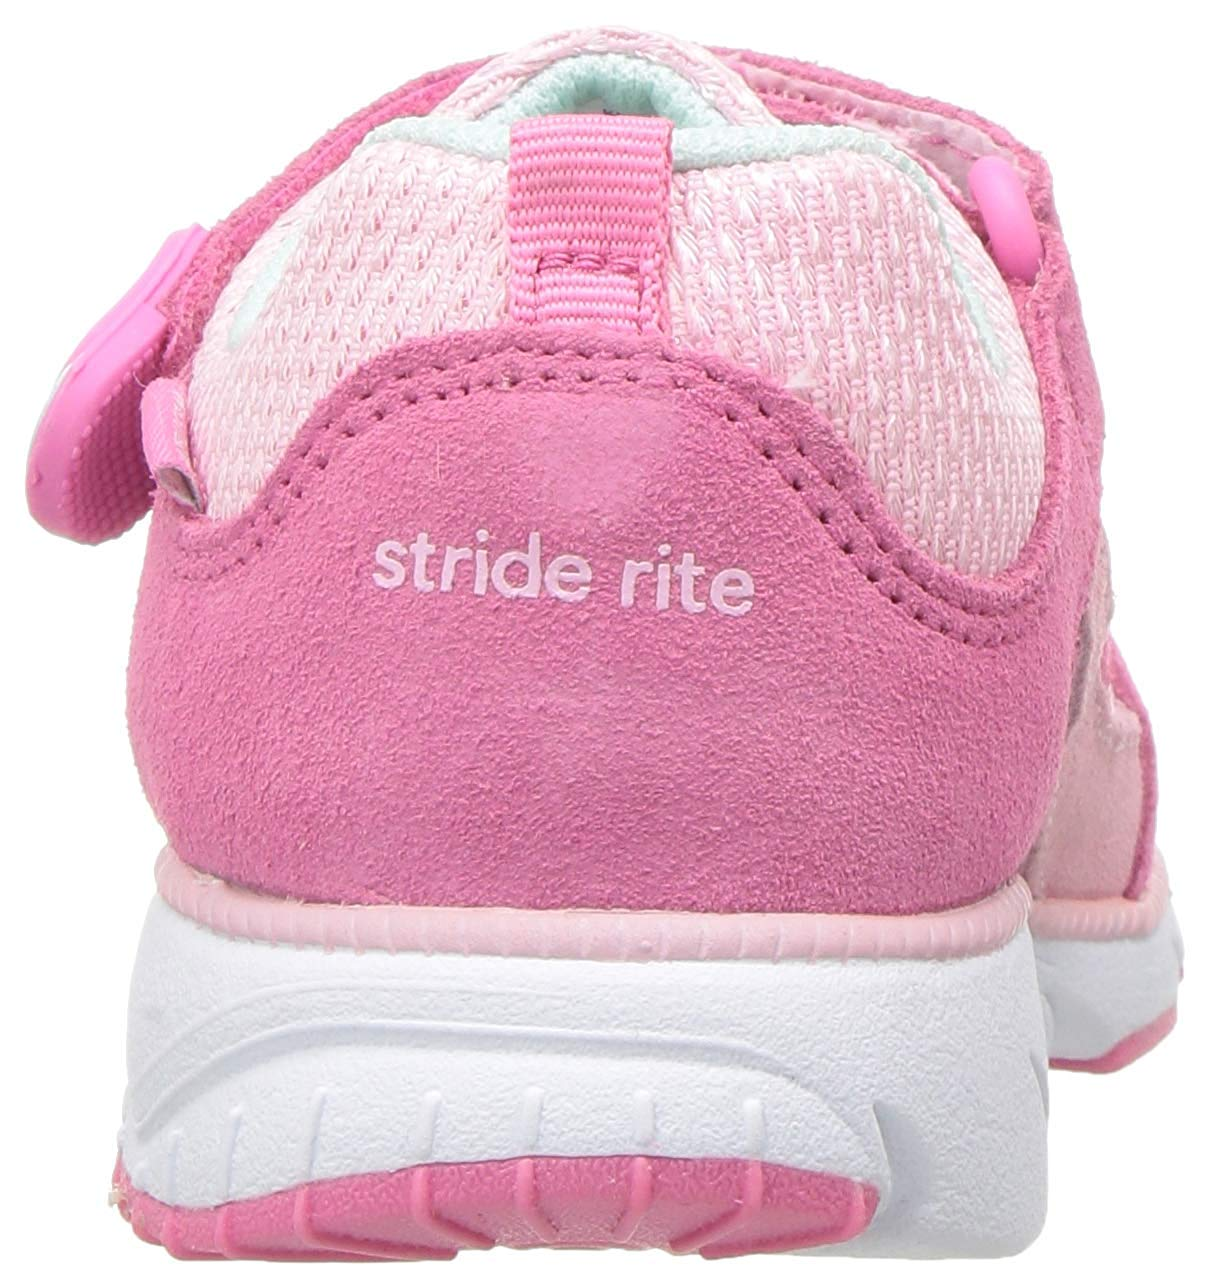 Stride Rite Kids Ace Boys and Girls Premium Leather Sneaker